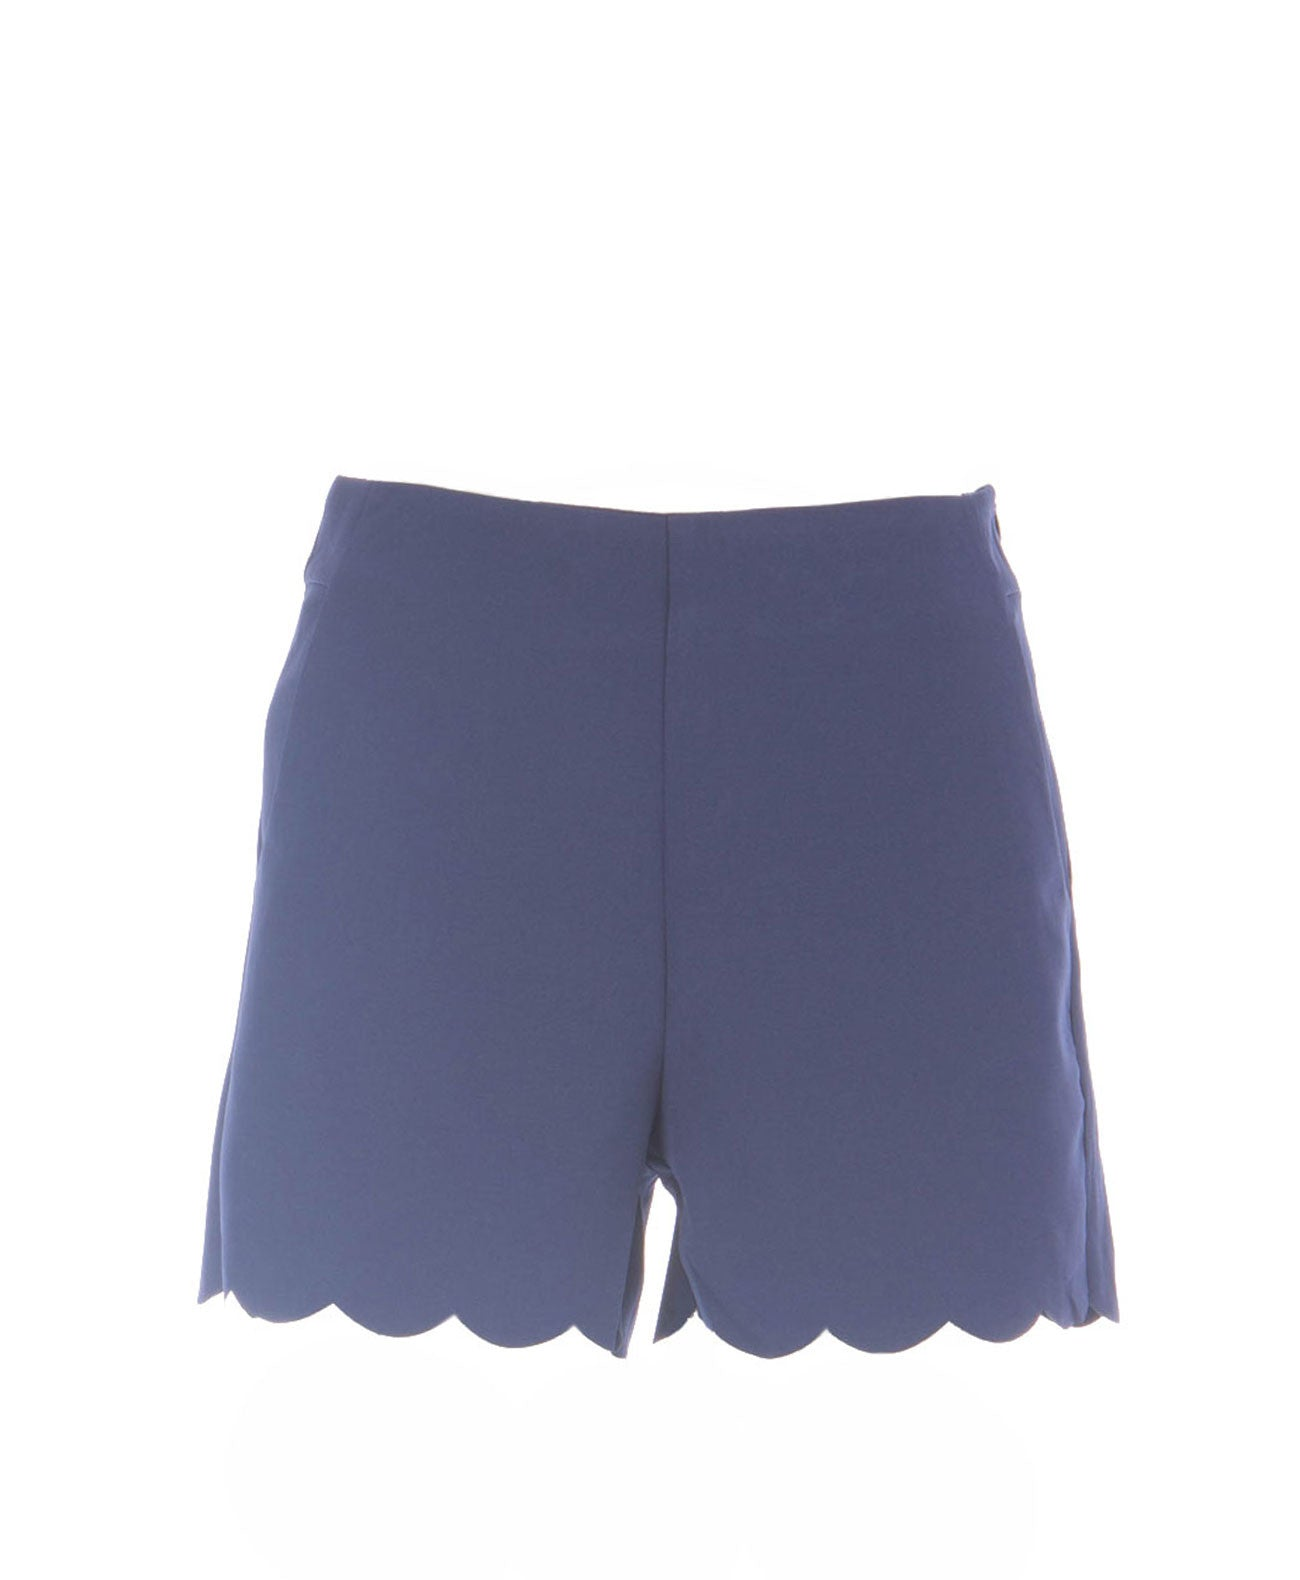 Blue Scalloped Shorts - Koko & Palenki - 1